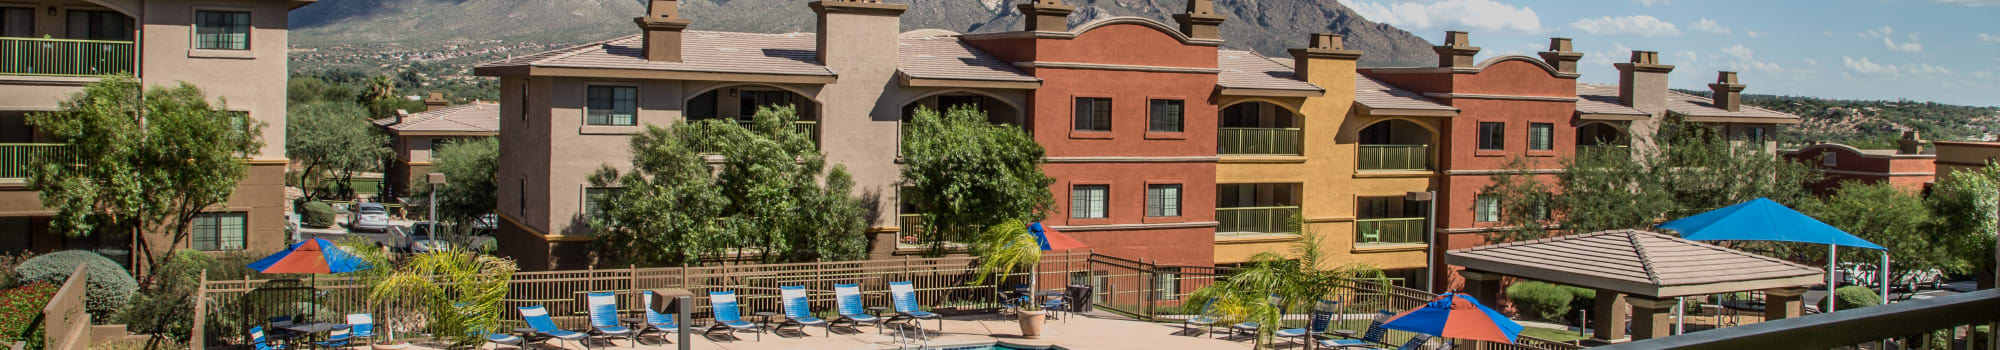 Contact us at Oro Vista Apartments in Oro Valley, Arizona